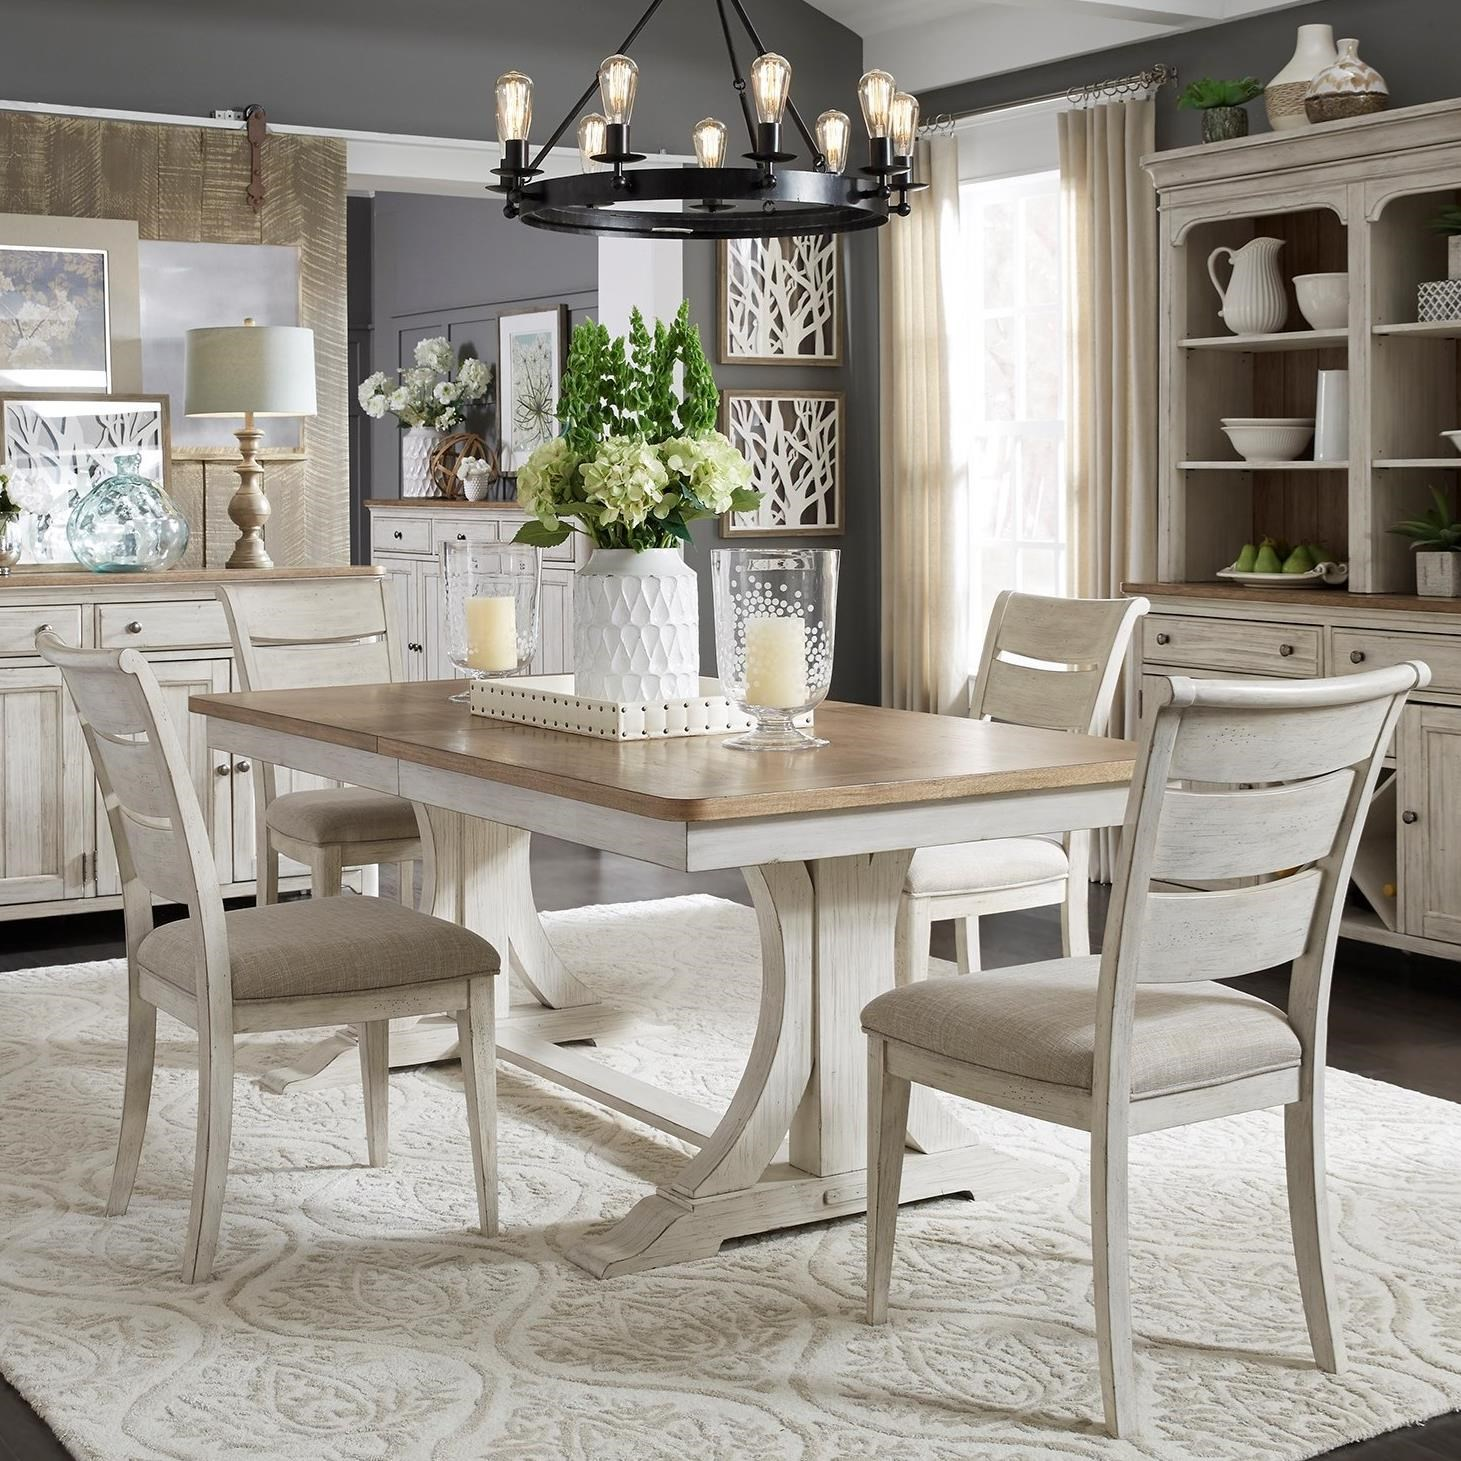 Farmhouse Reimagined 5-Piece Table and Chair Set  by Liberty Furniture at Northeast Factory Direct